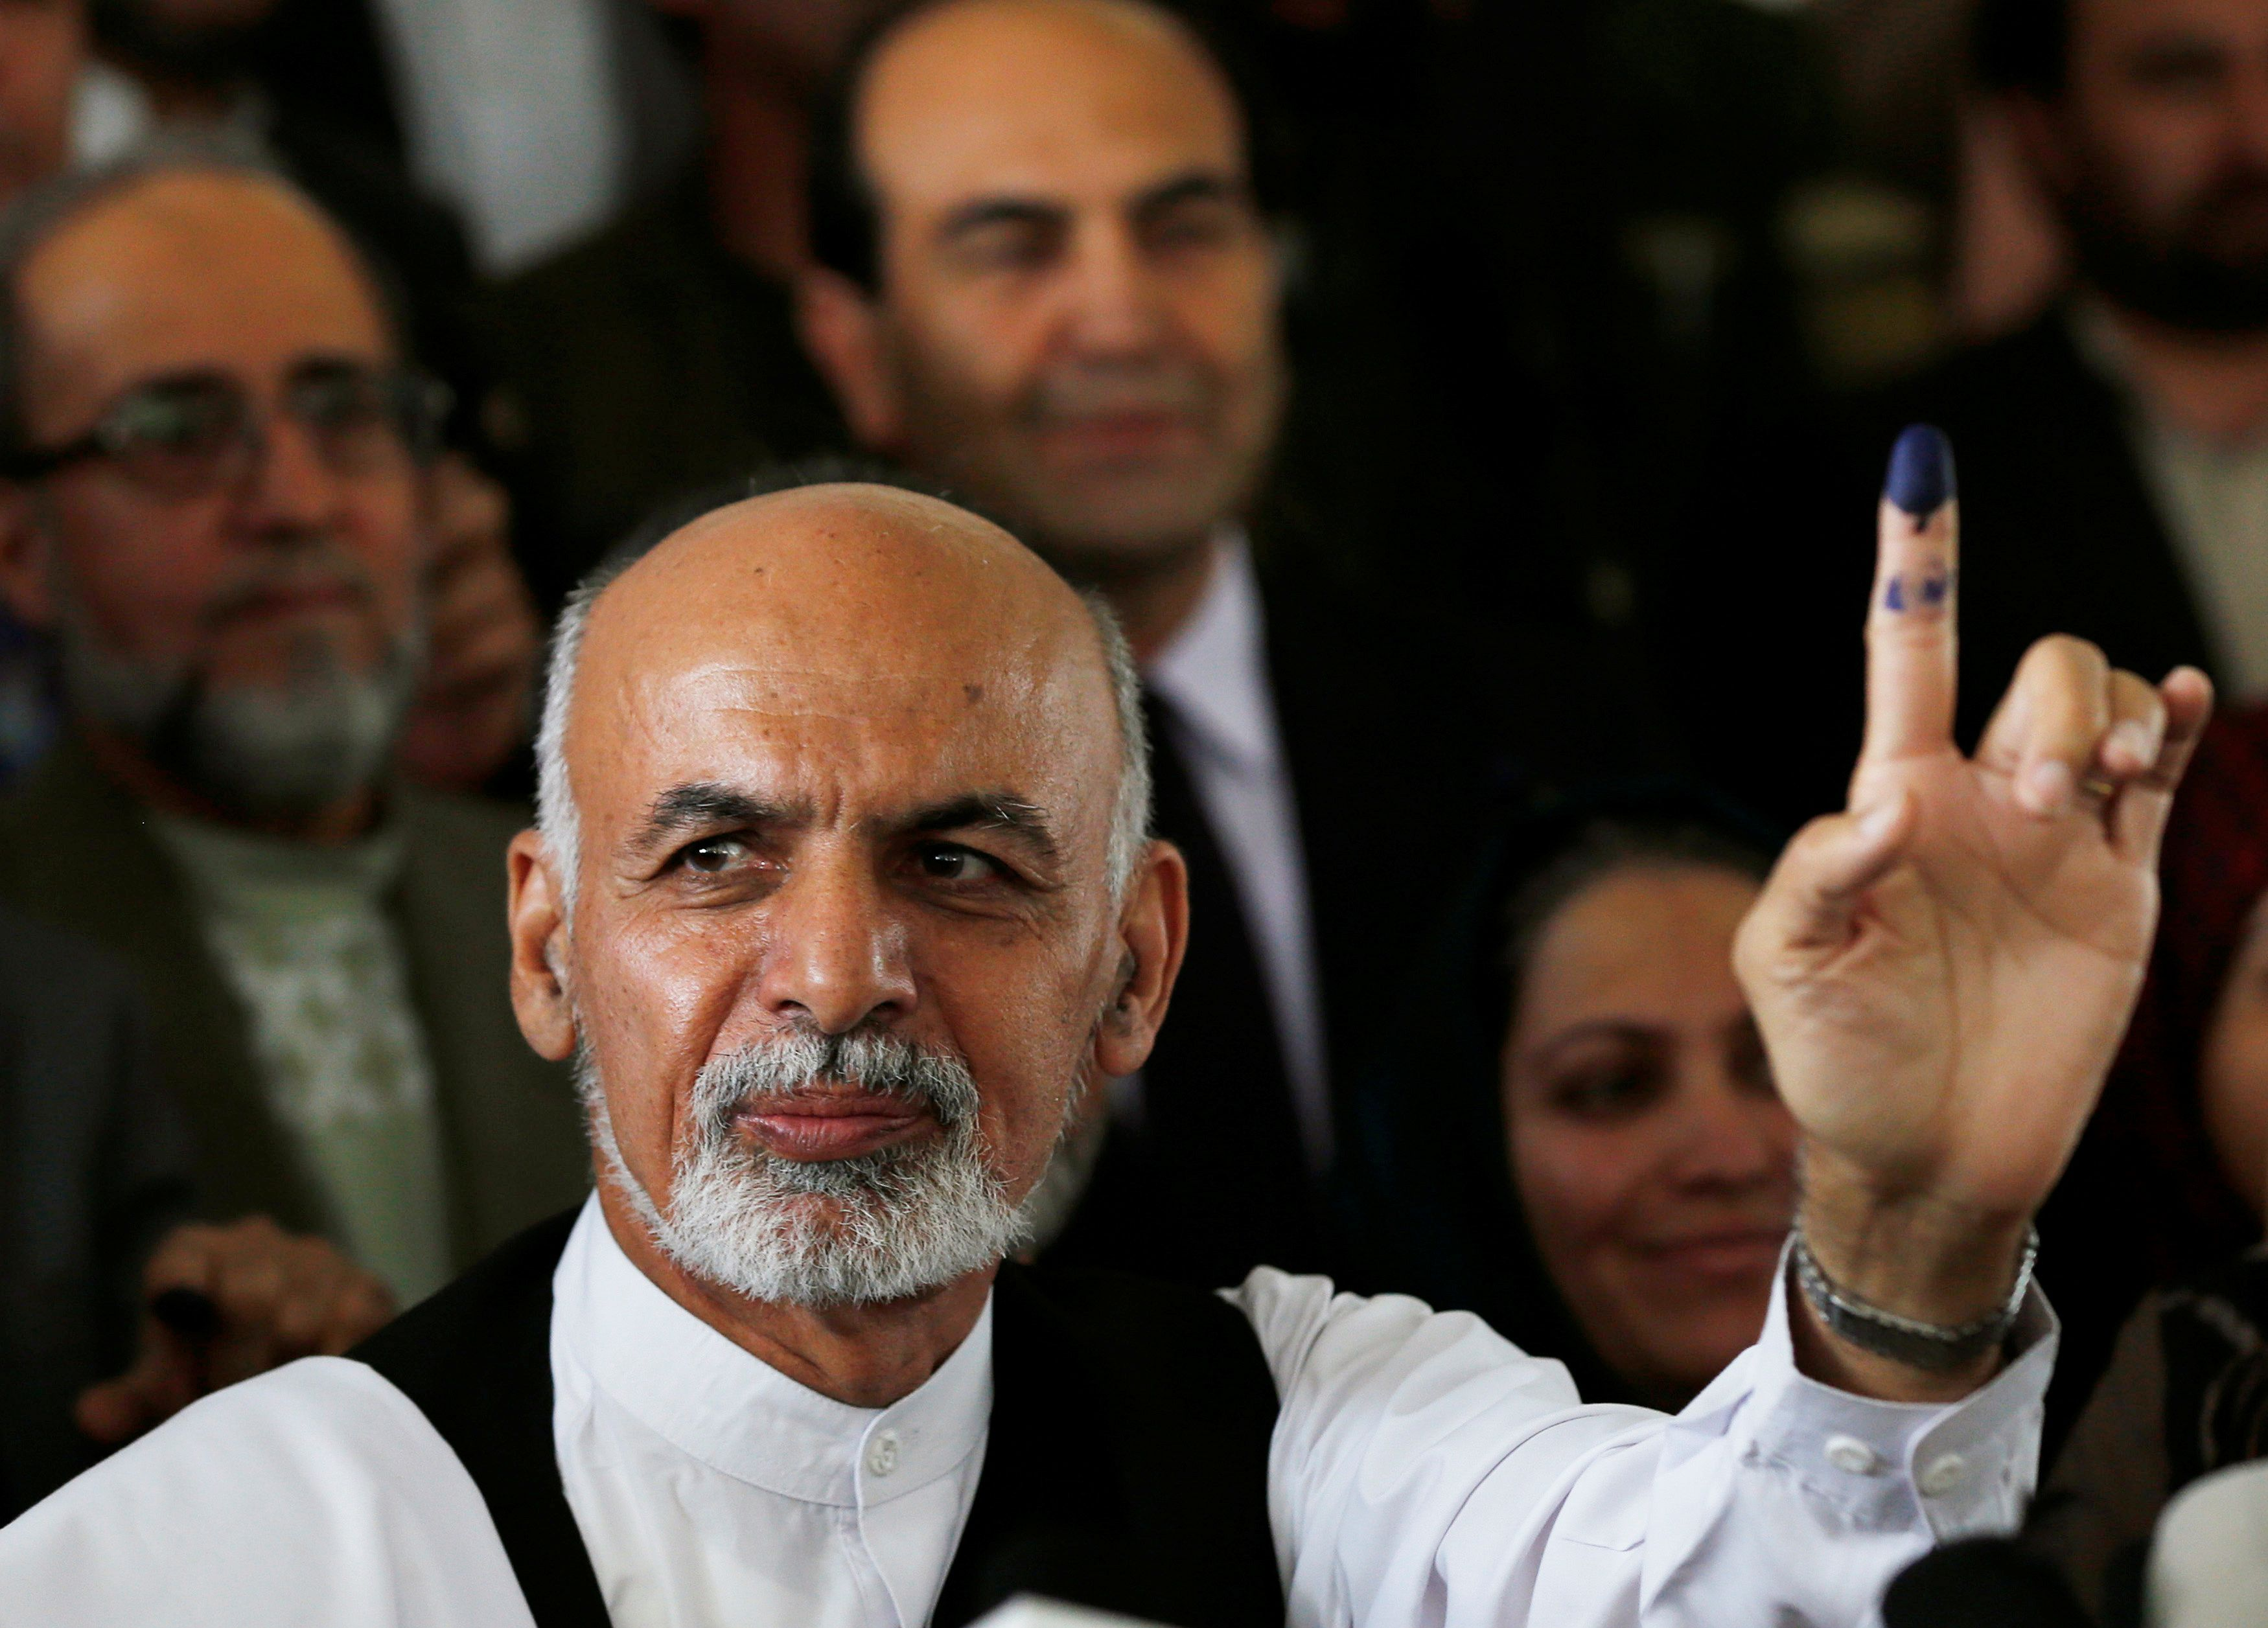 FILE PHOTO: Afghan presidential candidate Ashraf Ghani Ahmadzai holds up his ink-stained finger after voting in the presidential election in Kabul June 14, 2014. Afghans headed back to the polls on Saturday for a second round of voting to elect a successor to President Hamid Karzai in a decisive test of Afghanistan's ambitions to transfer power democratically for the first time in its tumultuous history.  REUTERS/Stringer/File Photo